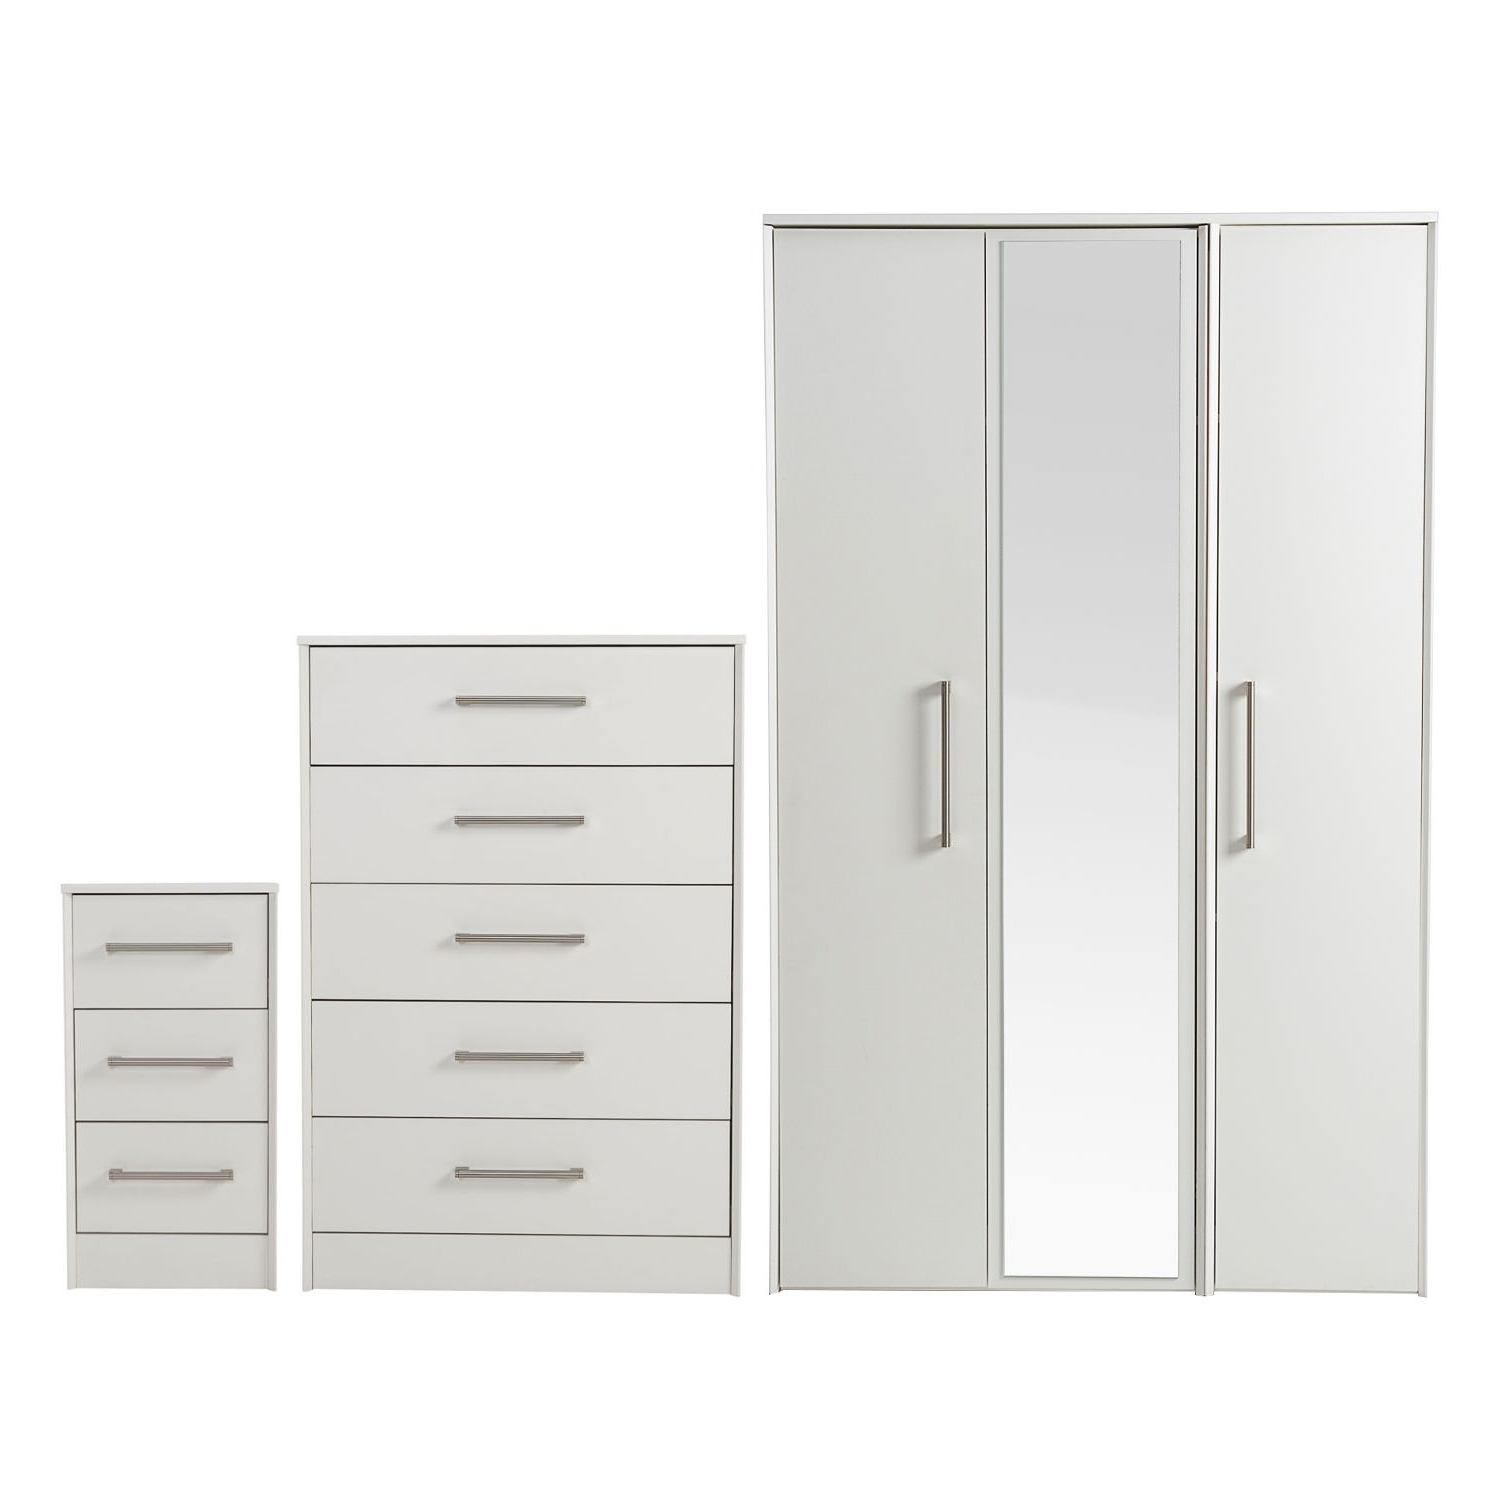 Cheap White Wardrobes Sets Within Favorite Drawers Design: Unique Chest Of Drawers In Wardrobe Photo Ideas (View 9 of 15)